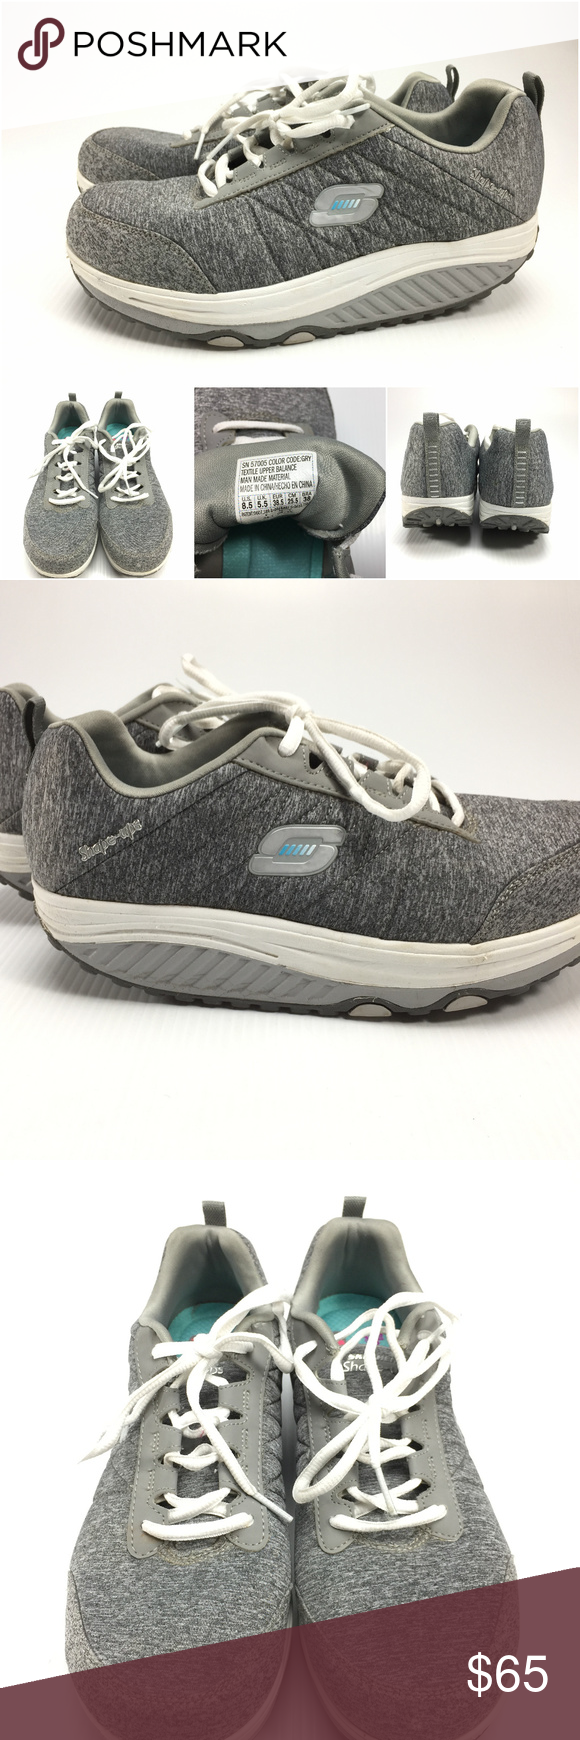 Skechers Shape Ups 2.0 Jersey Comfort shoes G2 4 Description